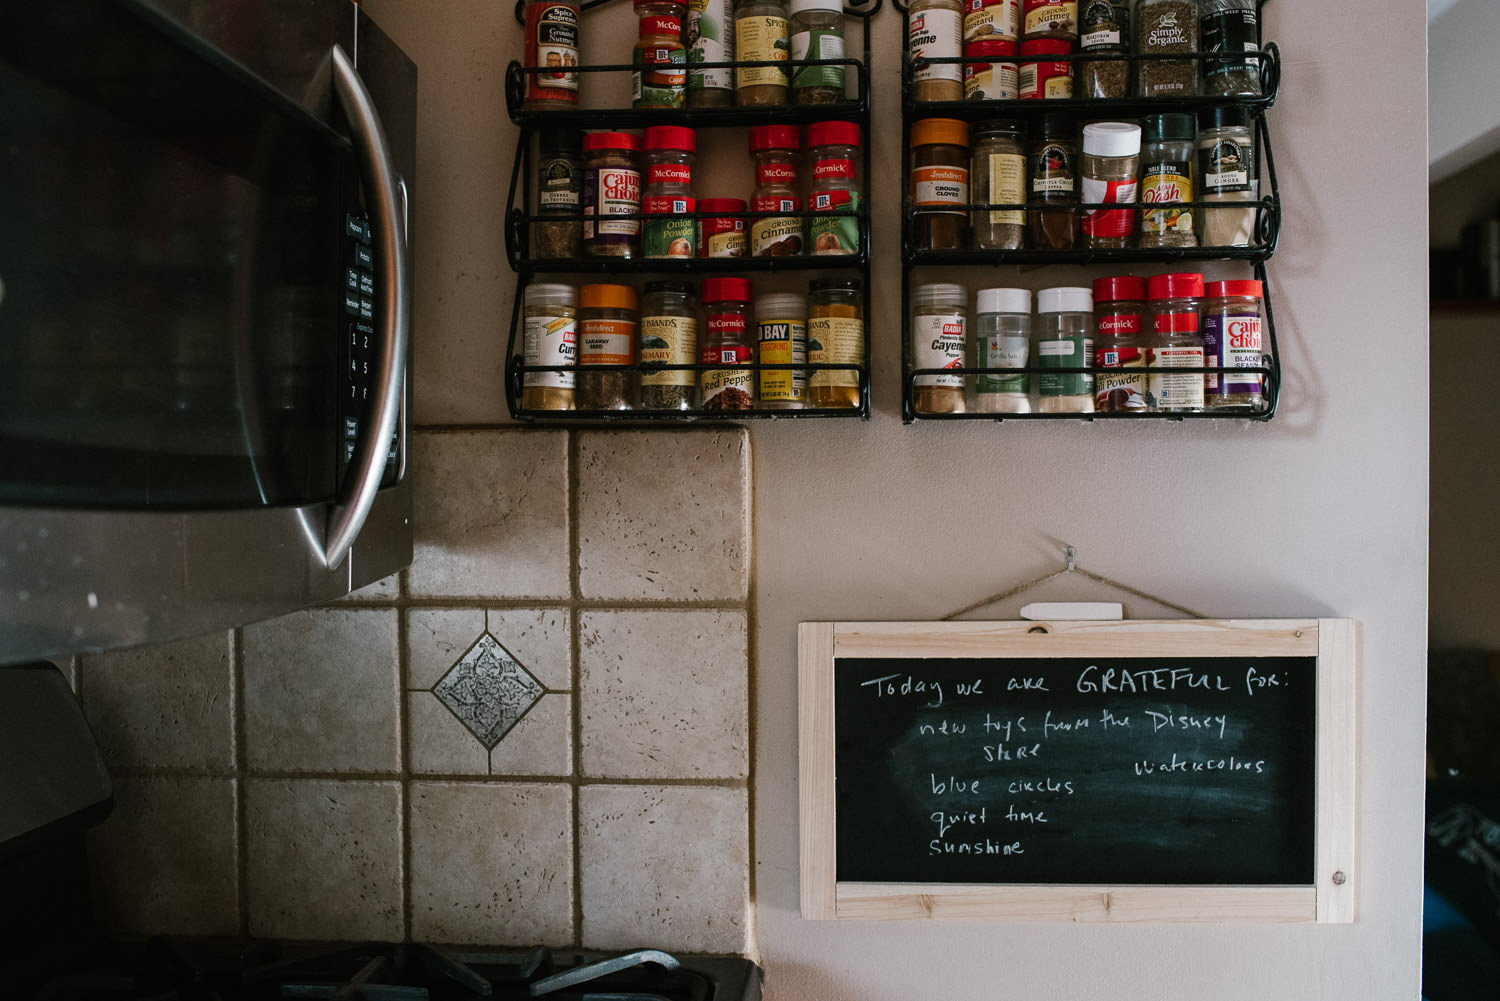 A chalkboard with gratitudes hangs in a kitchen.